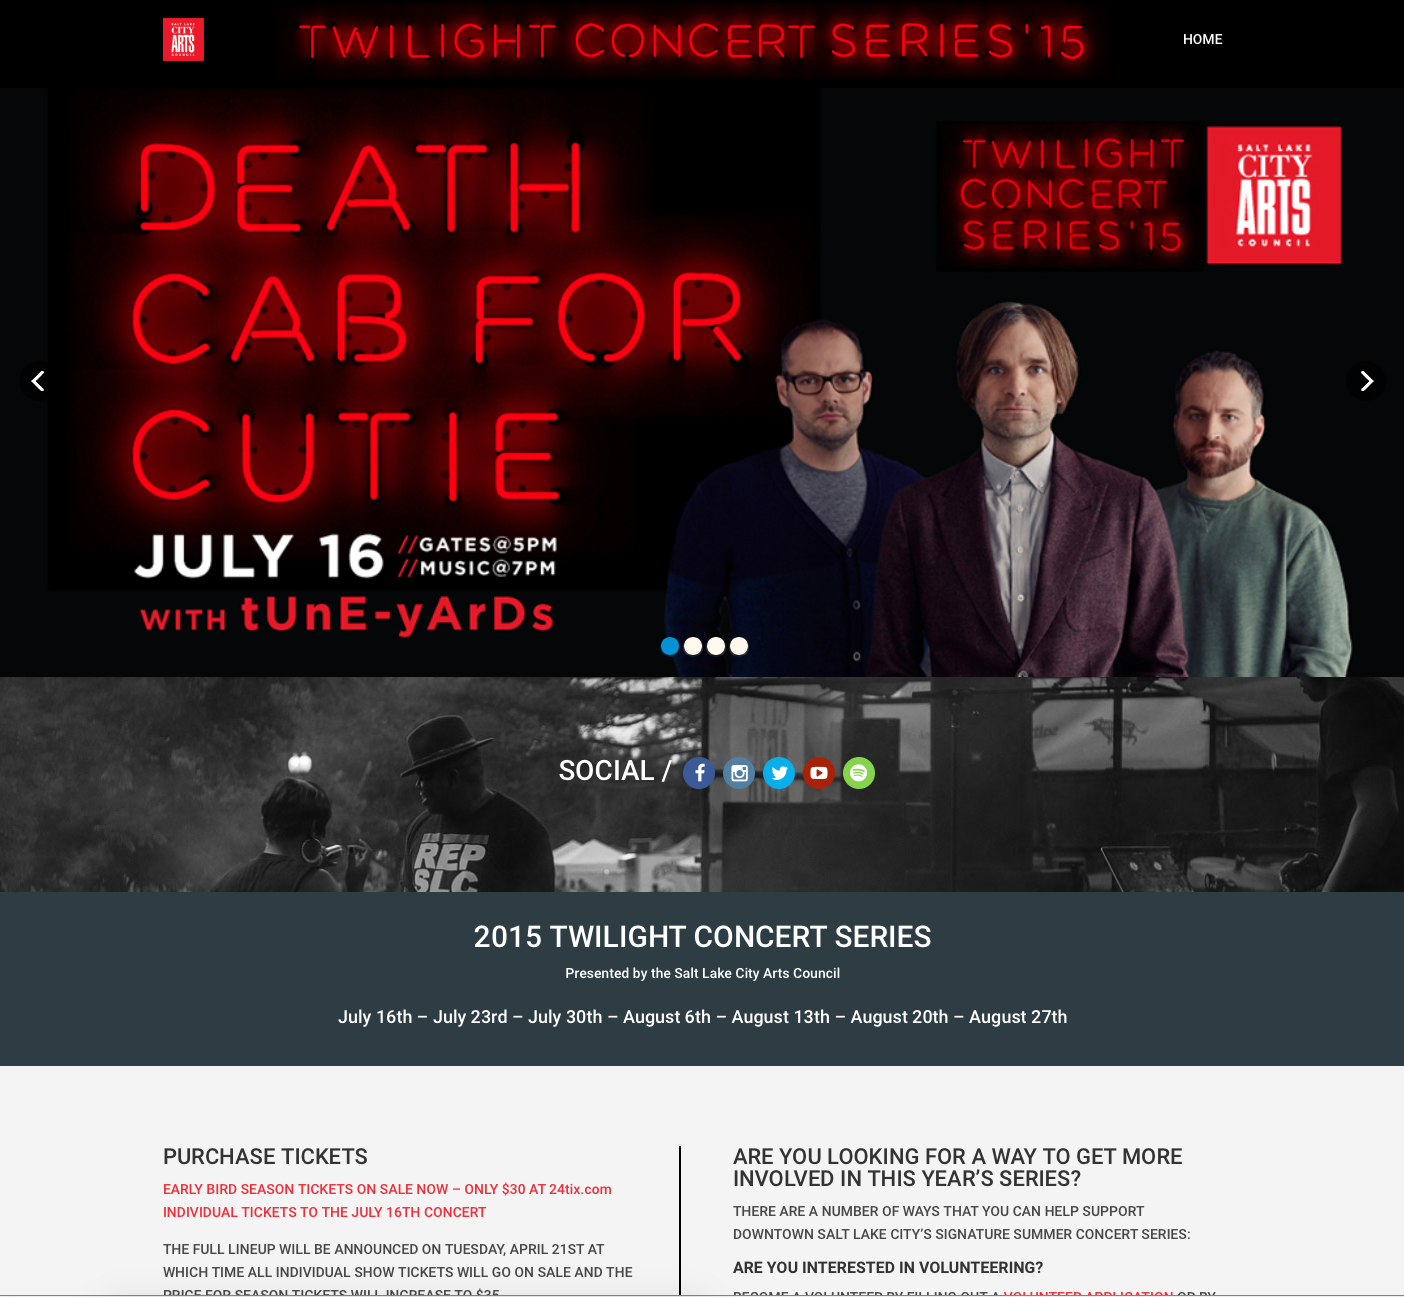 Twilight Concert Series 2015 Site